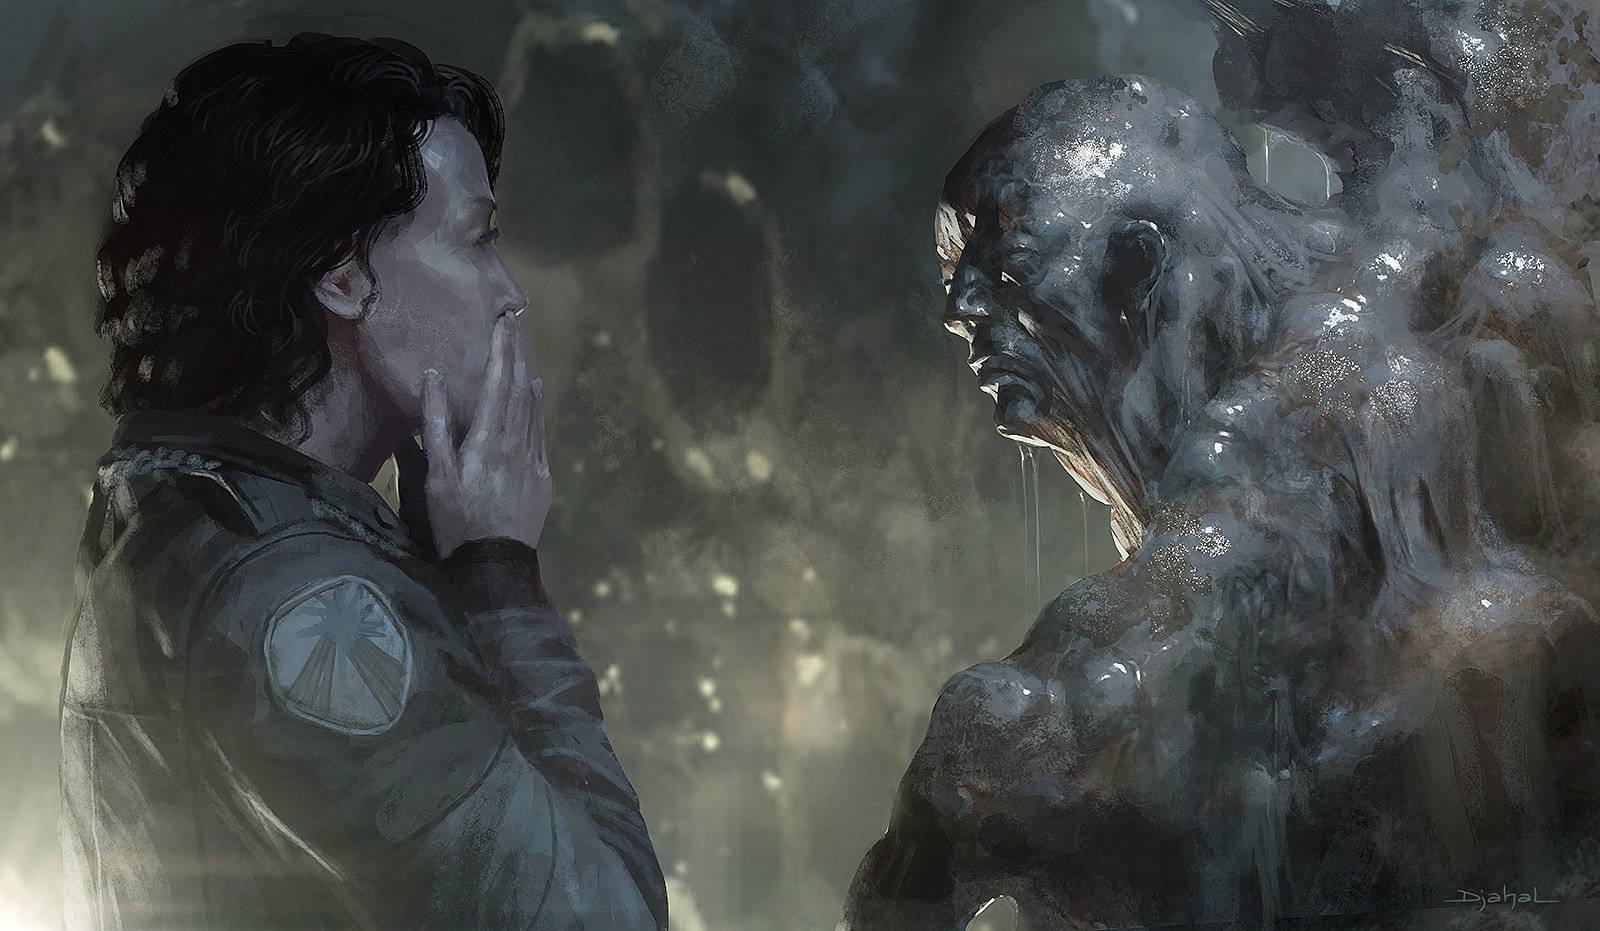 alien-5-neill-blomkamp-face-melting-artwork-by-geoffroy-thoorens